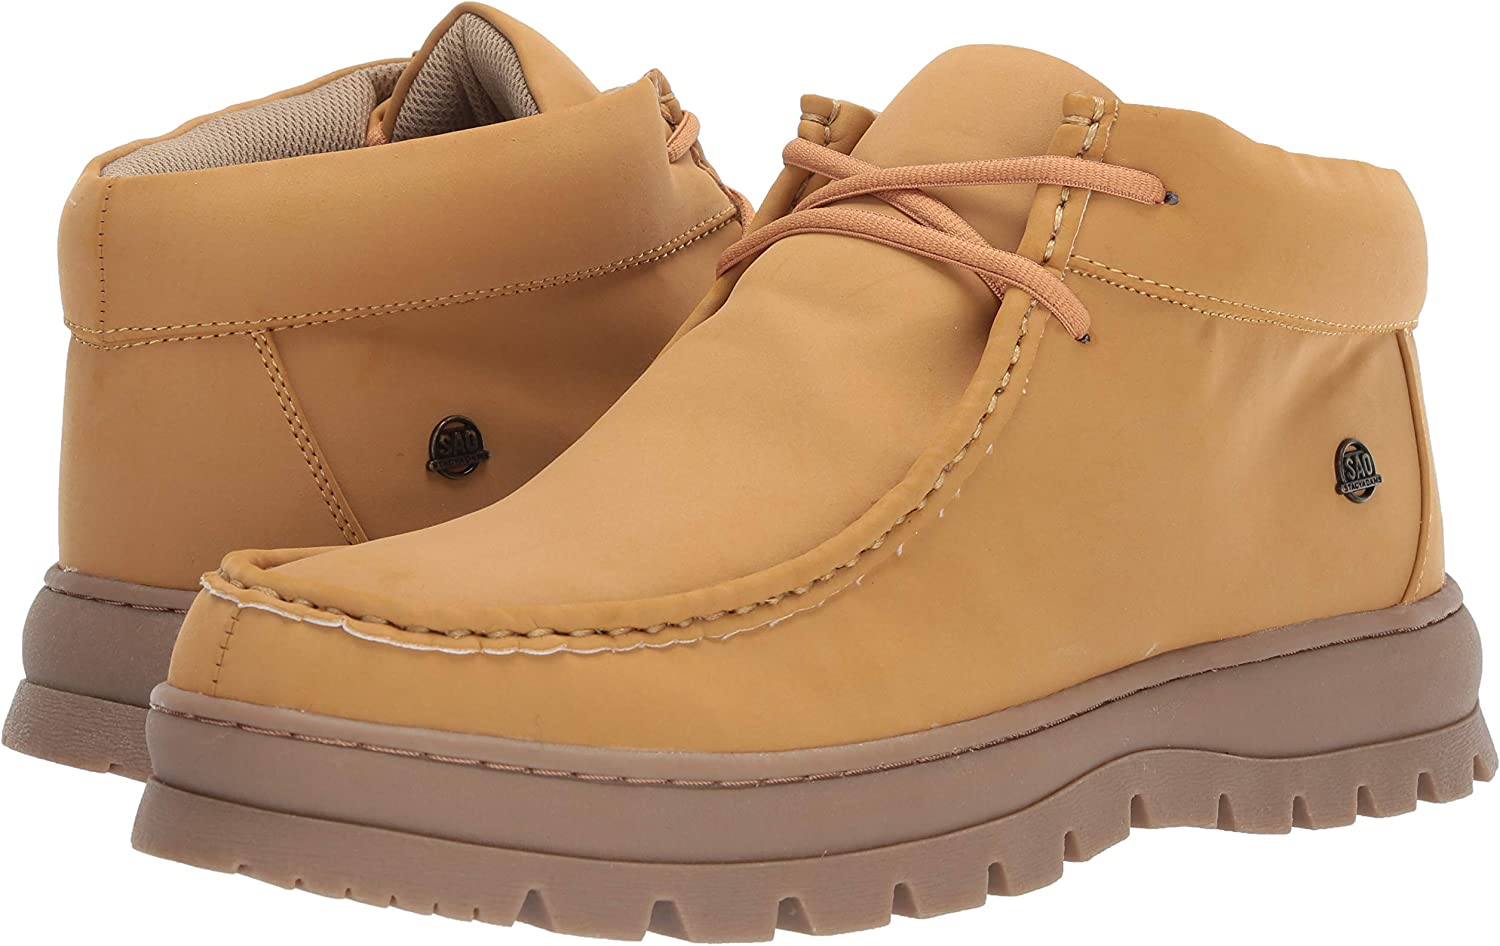 STACY ADAMS Mens Wally Moc Toe Lace-up Chukka Boot Sneaker